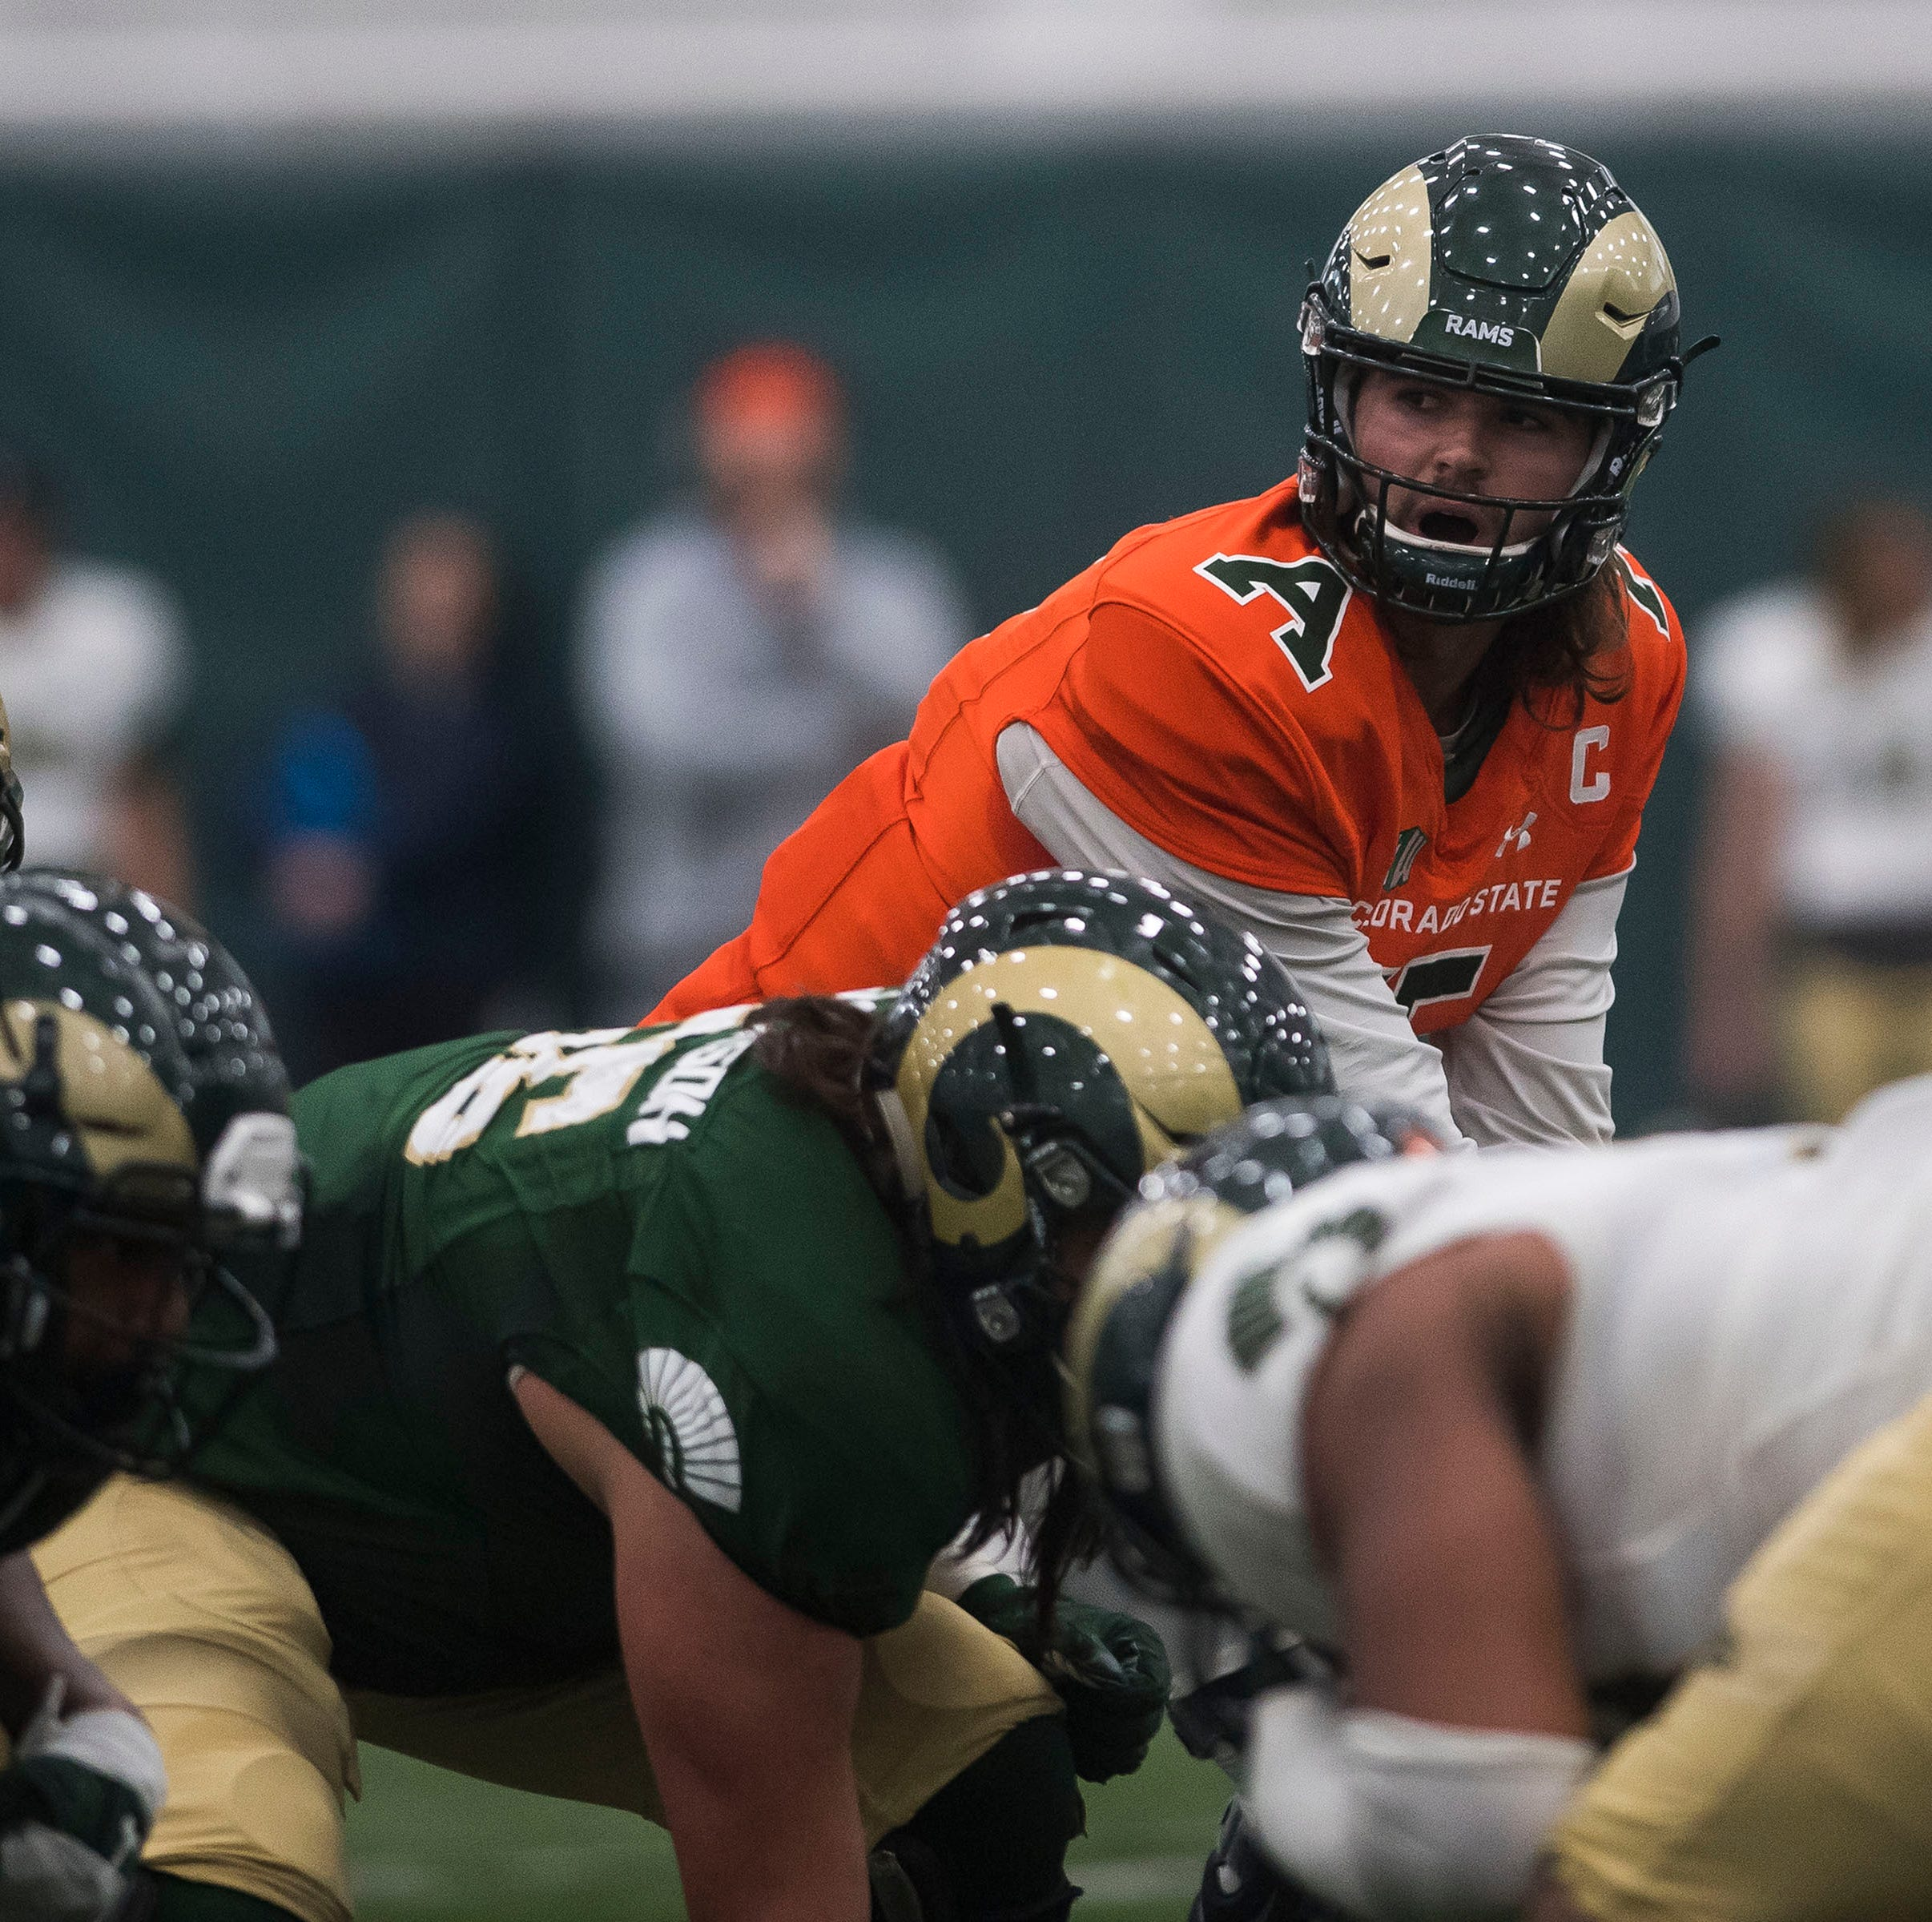 An early look at CSU football's likely depth chart for 2019